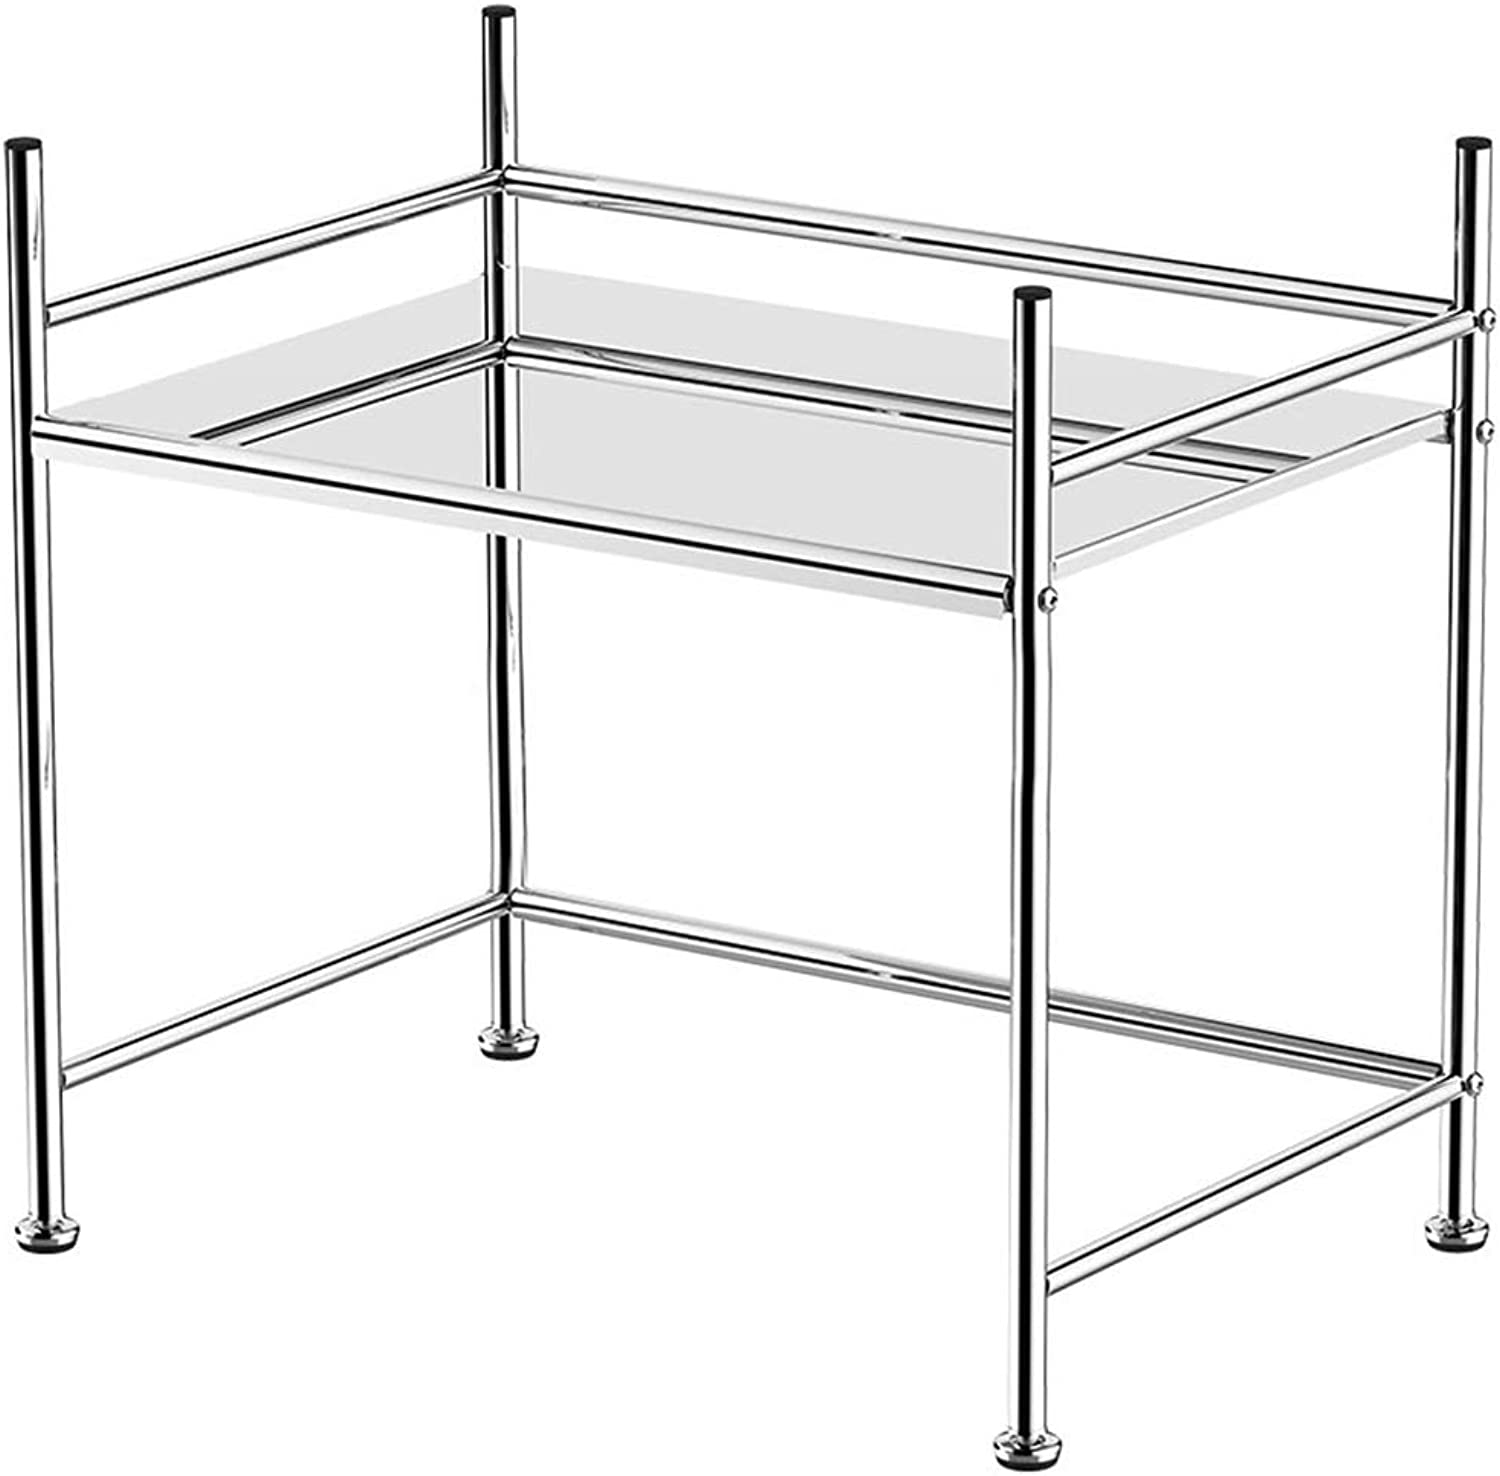 Kitchen Shelf Microwave Shelf 1 Layer Partition Unit Carbon Steel Material Large Capacity Storage Rack Floor Type 23.2  14.5  19.6 Inches